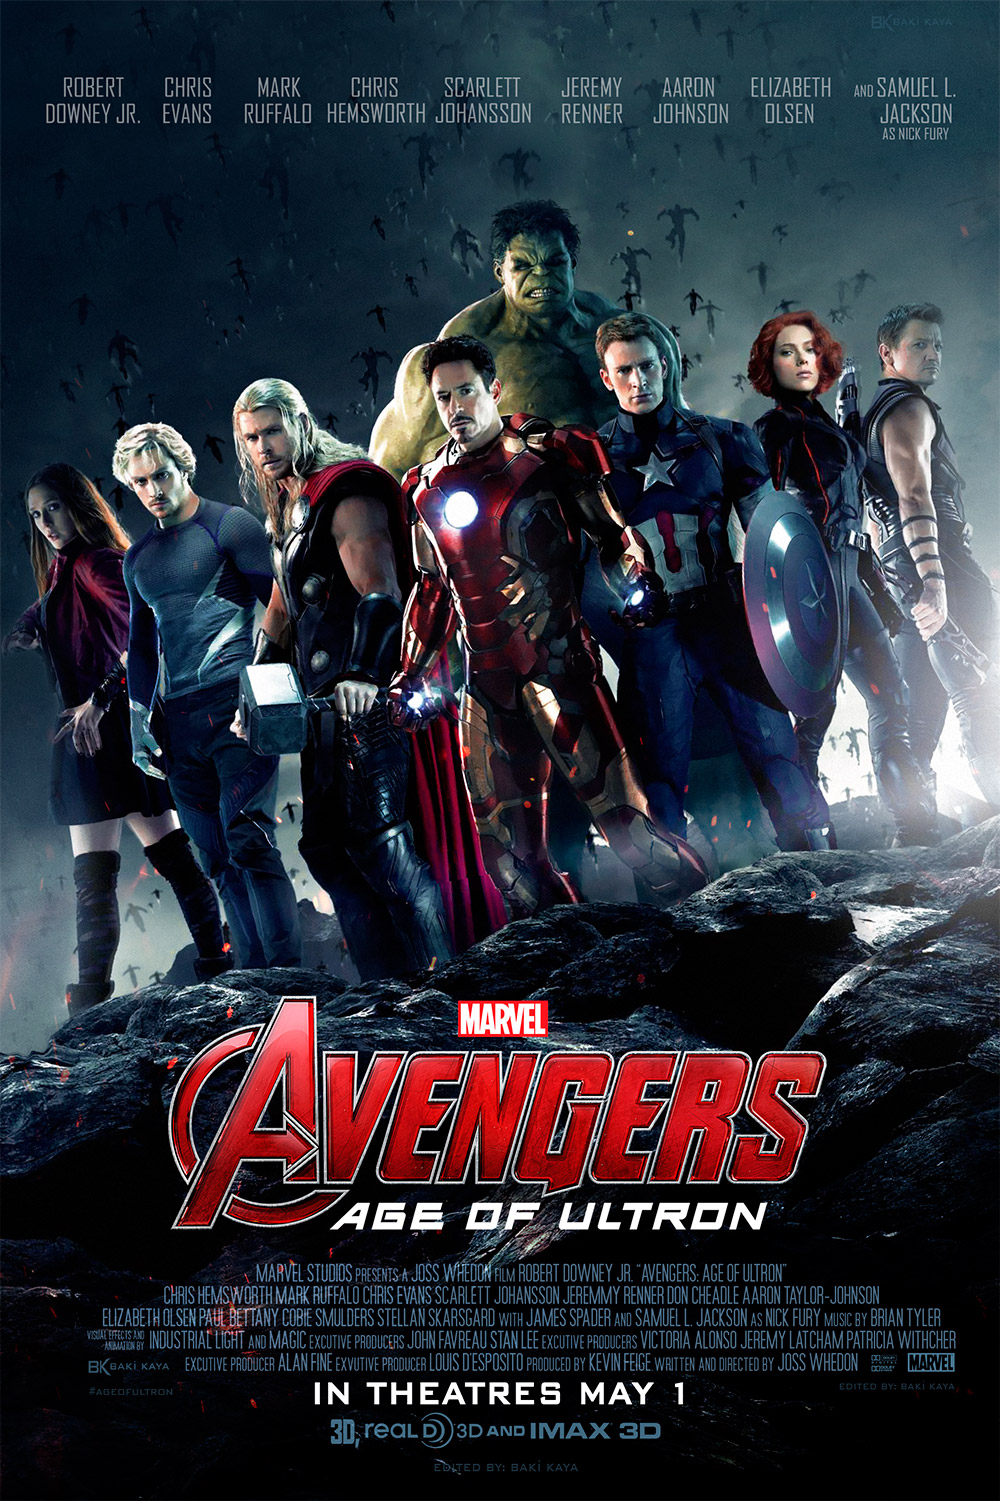 hd movie free download: avengers: age of ultron (2015) full hd movie